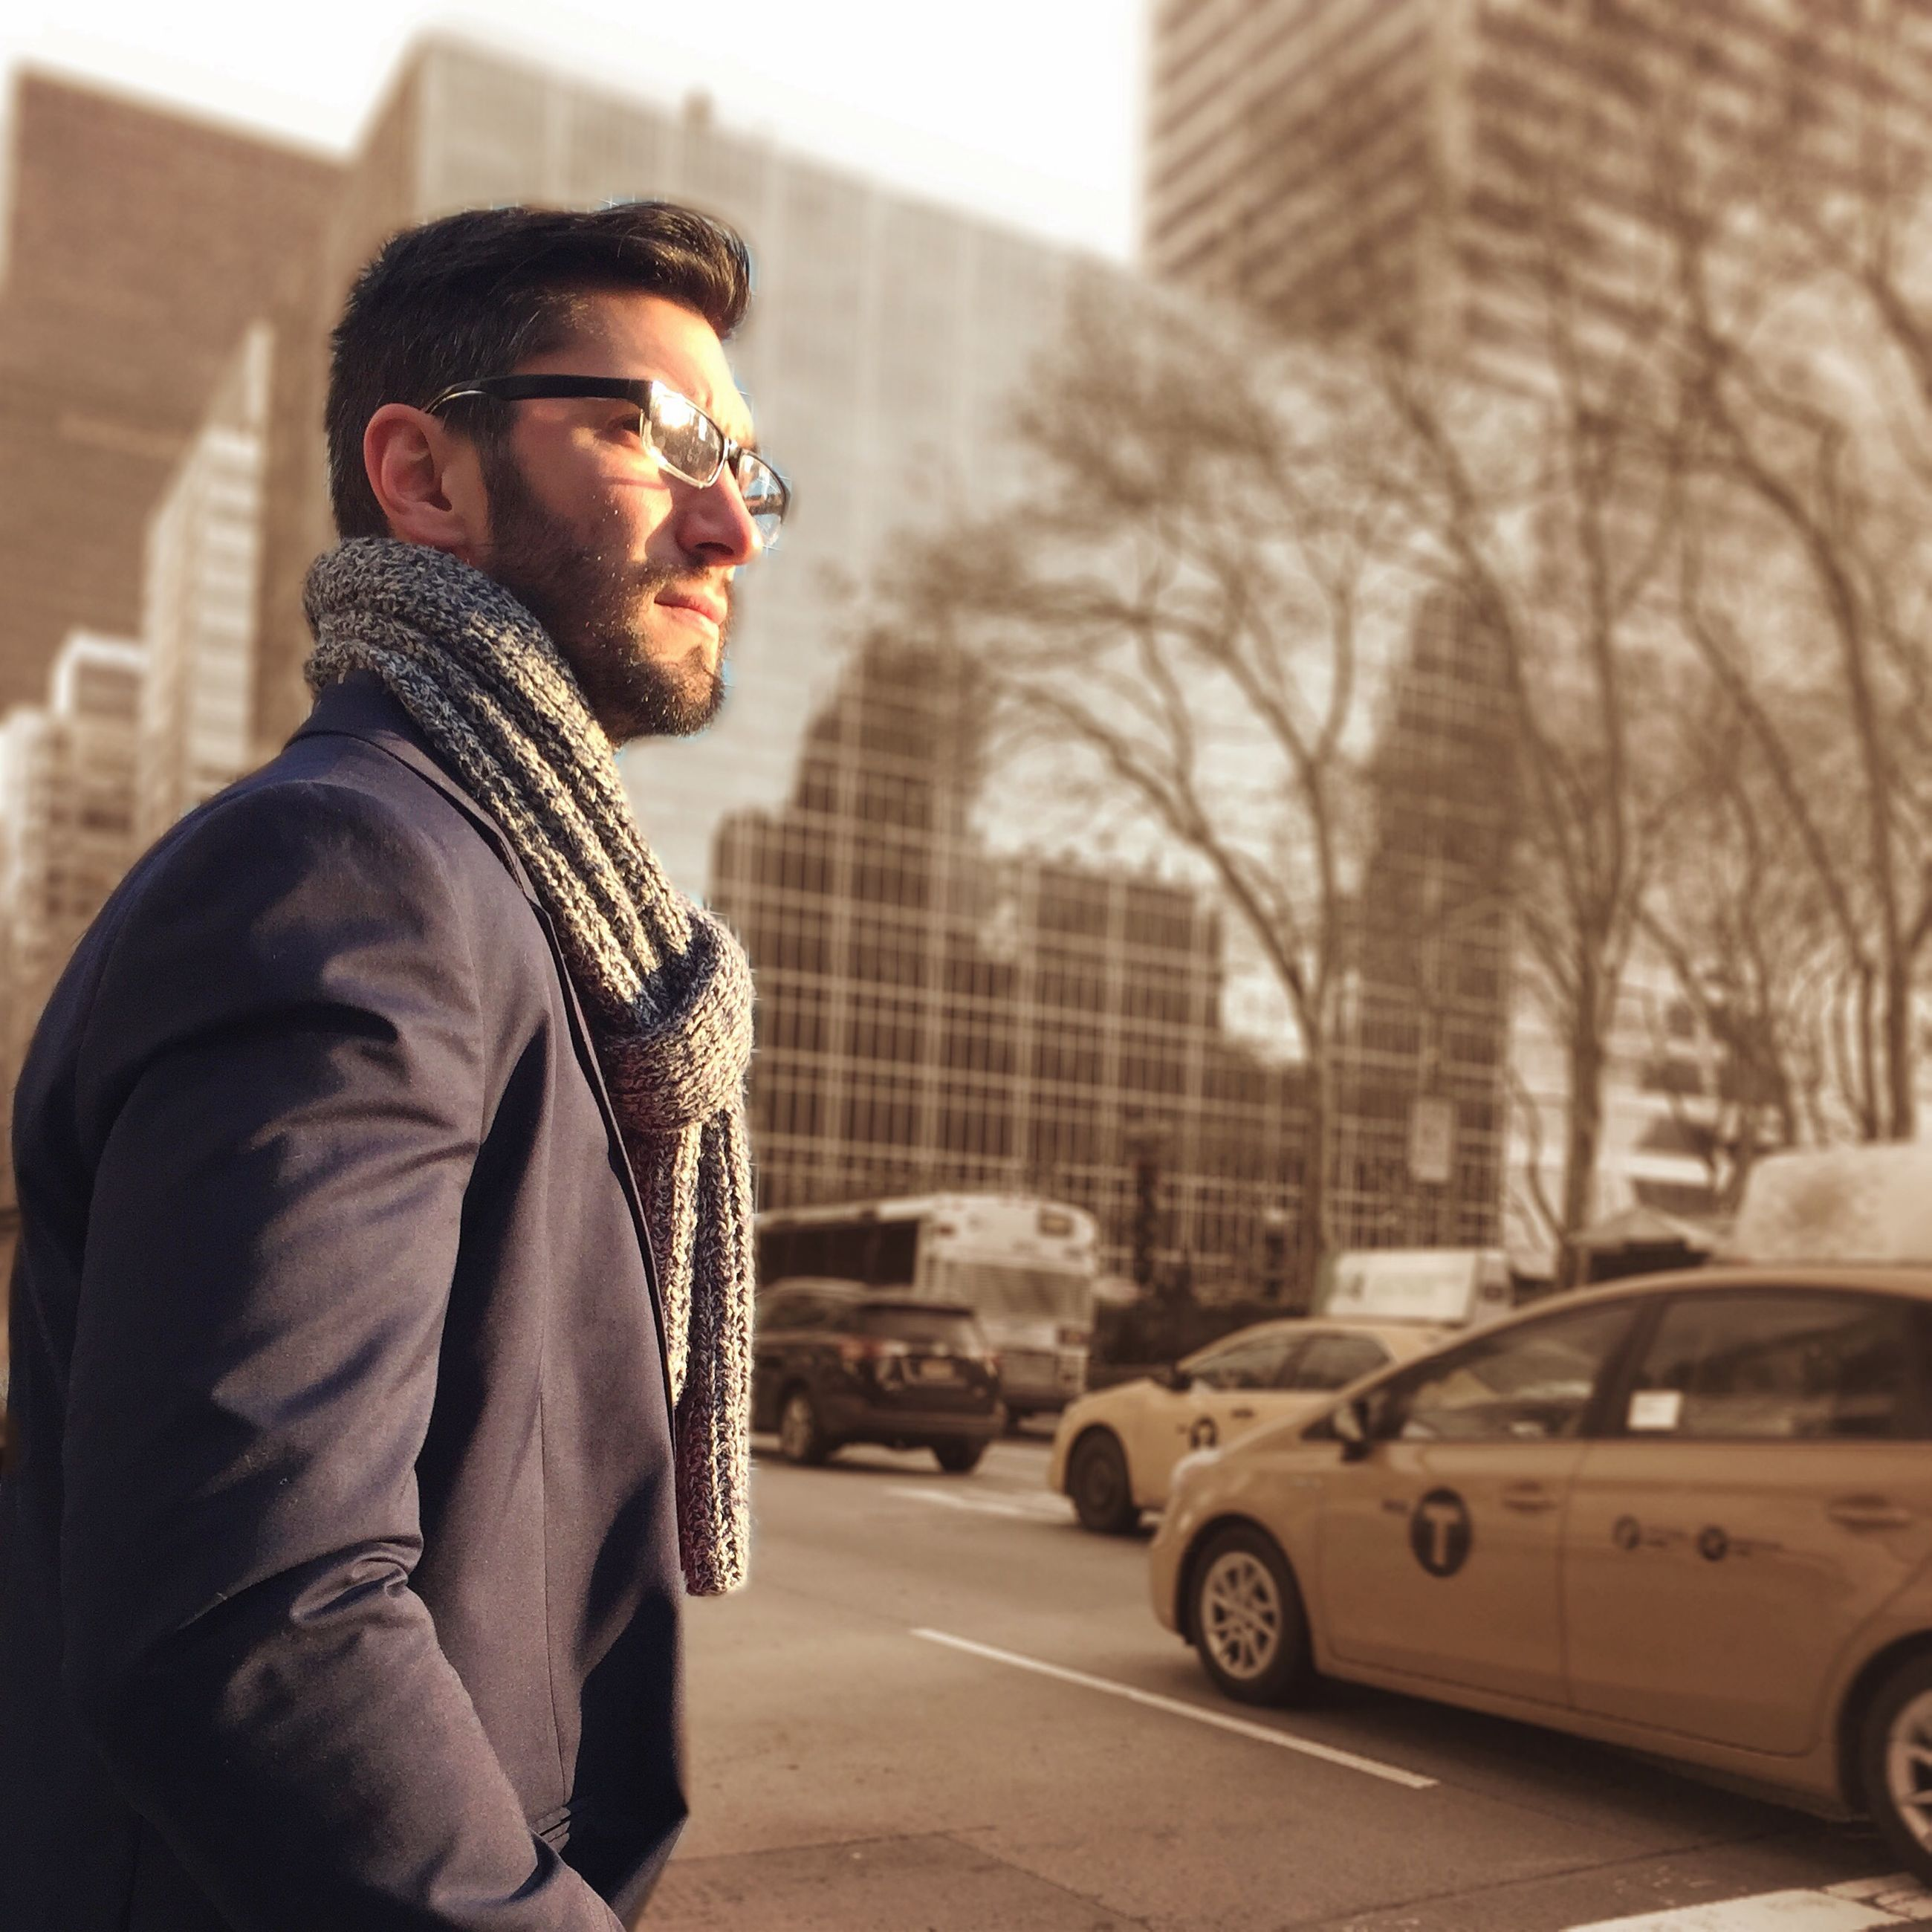 young adult, lifestyles, young men, person, casual clothing, leisure activity, transportation, land vehicle, car, mode of transport, building exterior, looking at camera, architecture, portrait, side view, front view, built structure, sunglasses